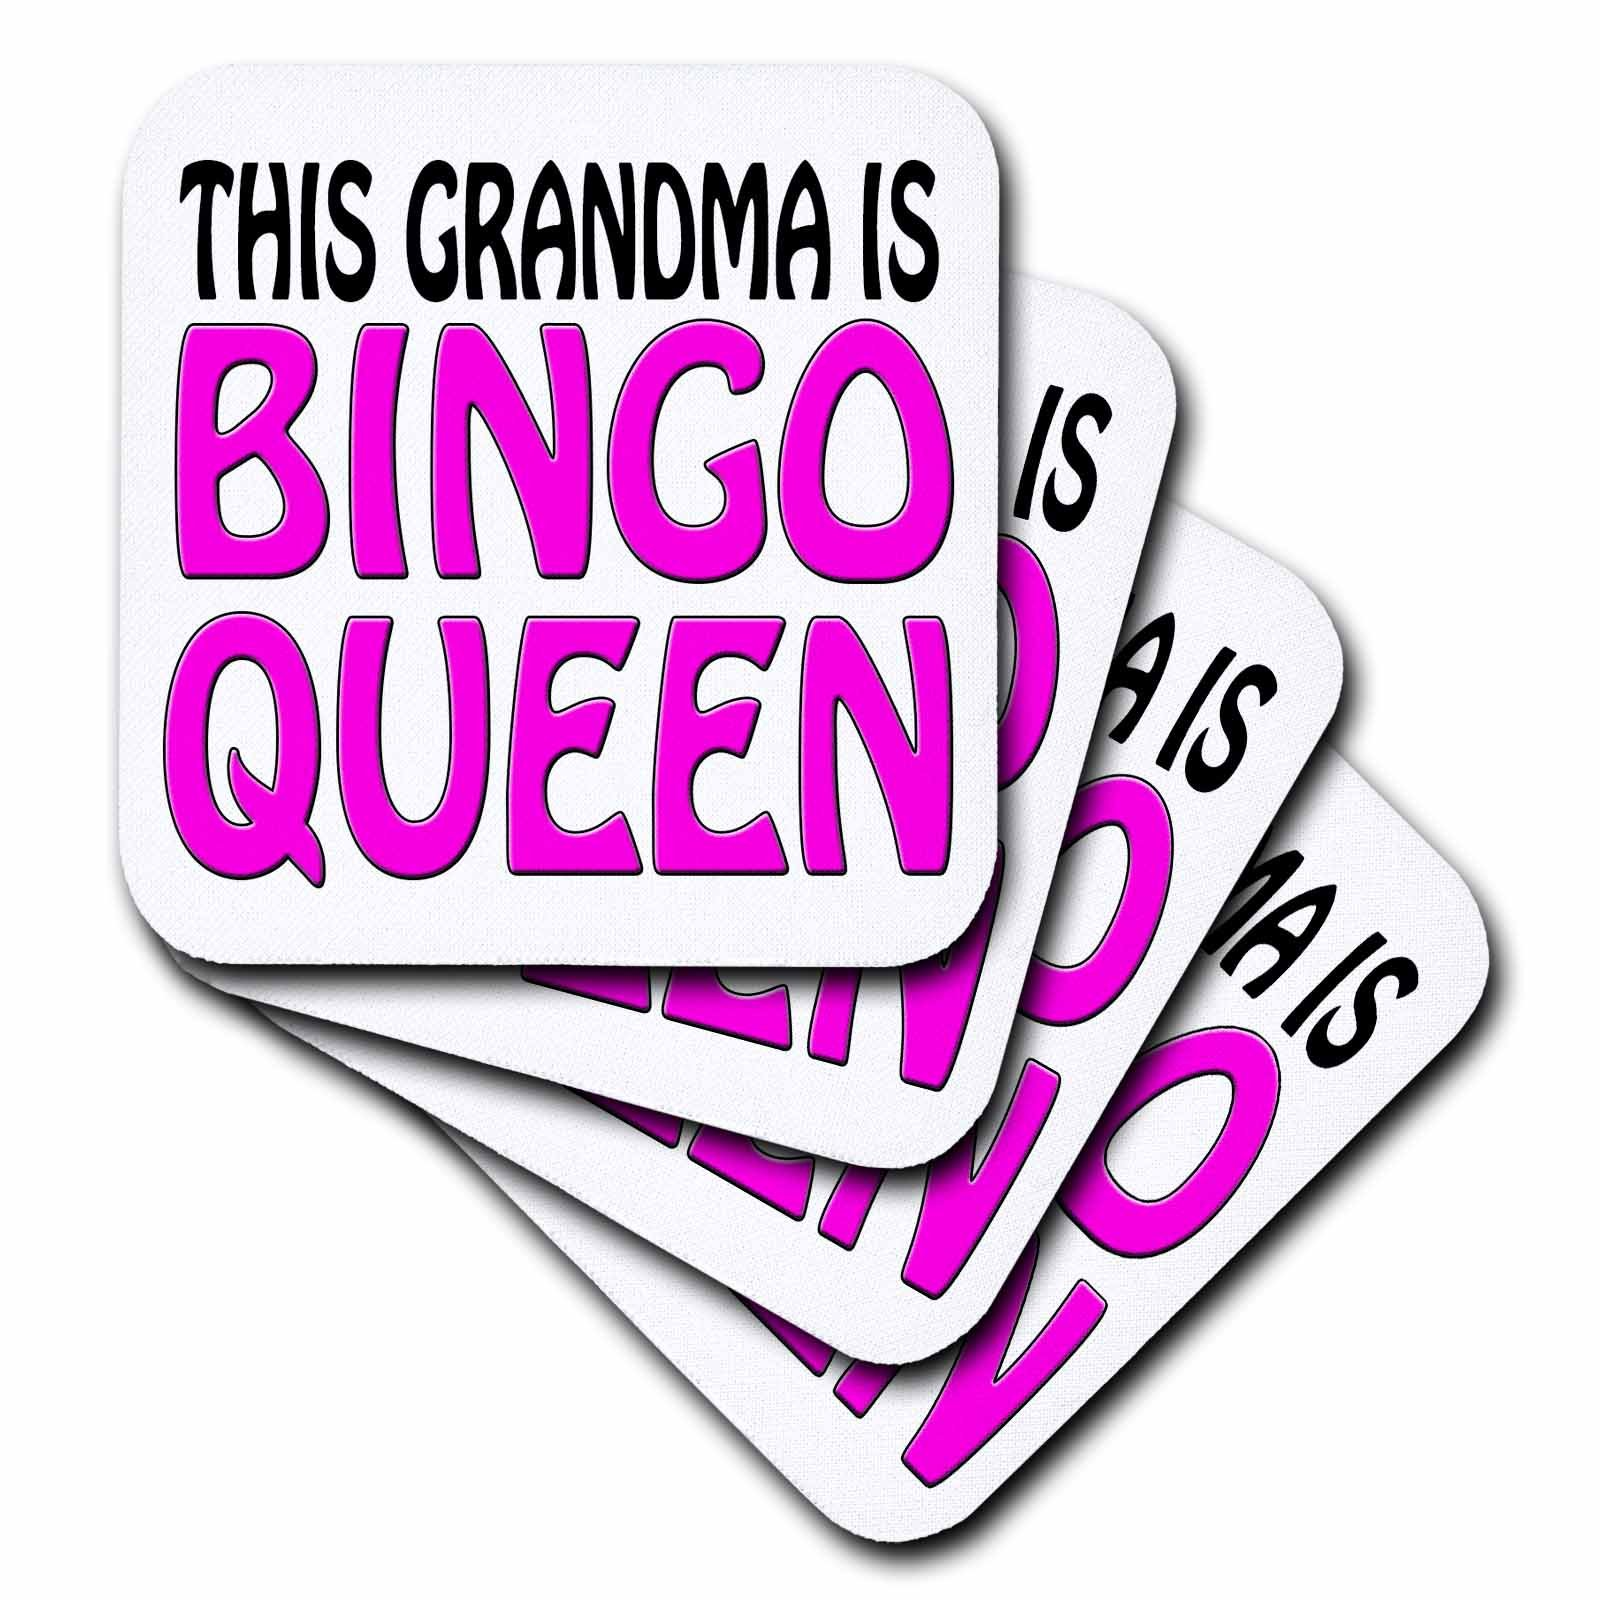 3dRose cst_149770_1 This Grandma Is Bingo Queen, Hot Pink, Soft Coasters, Set of 4 by 3dRose